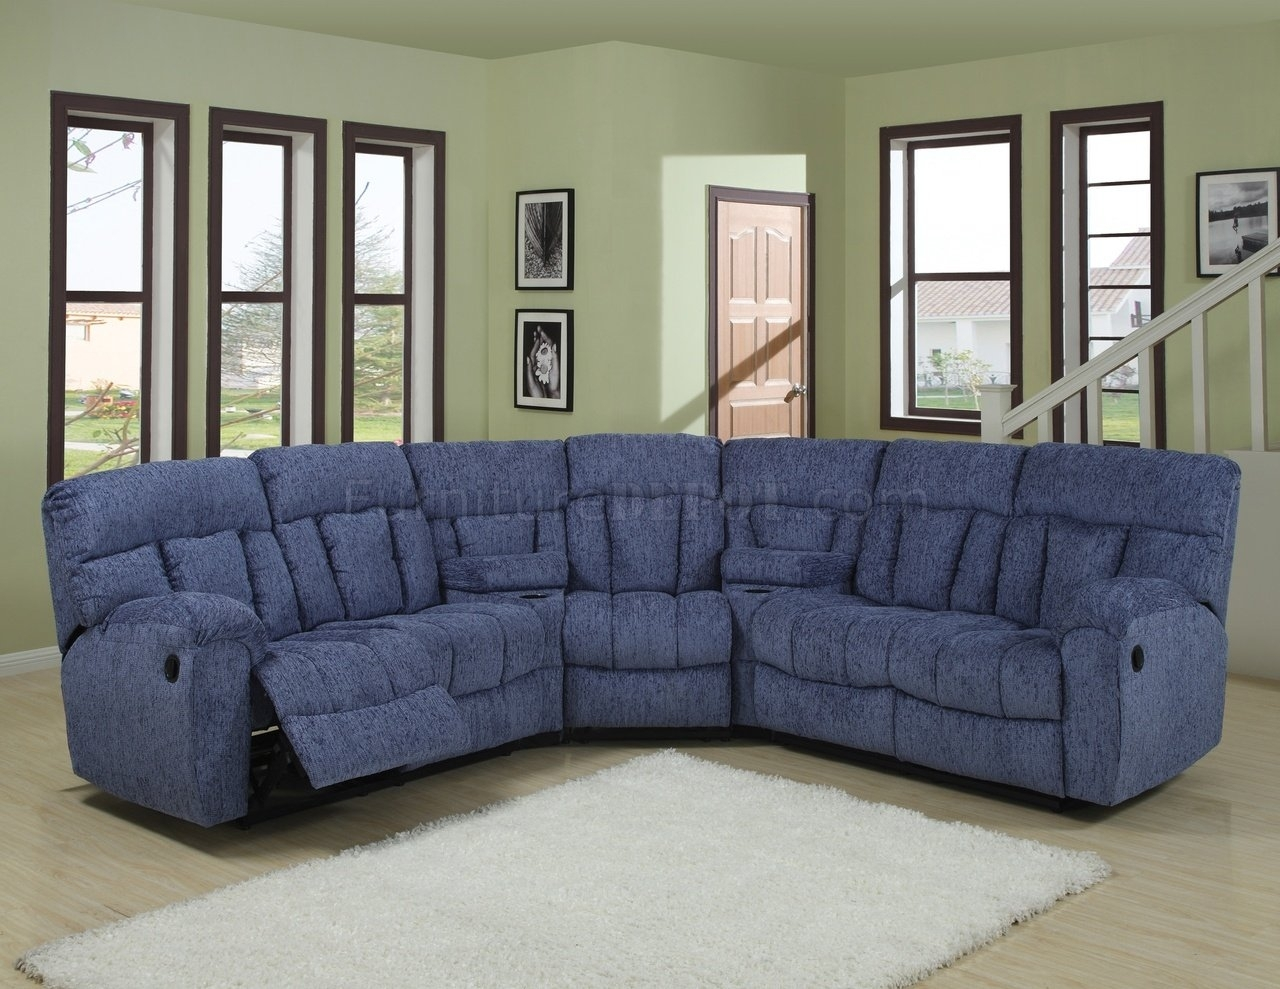 Awesome Blue Sectional Sofa 34 On Sofa Room Ideas With Blue Inside Blue Sectional Sofas (View 10 of 10)